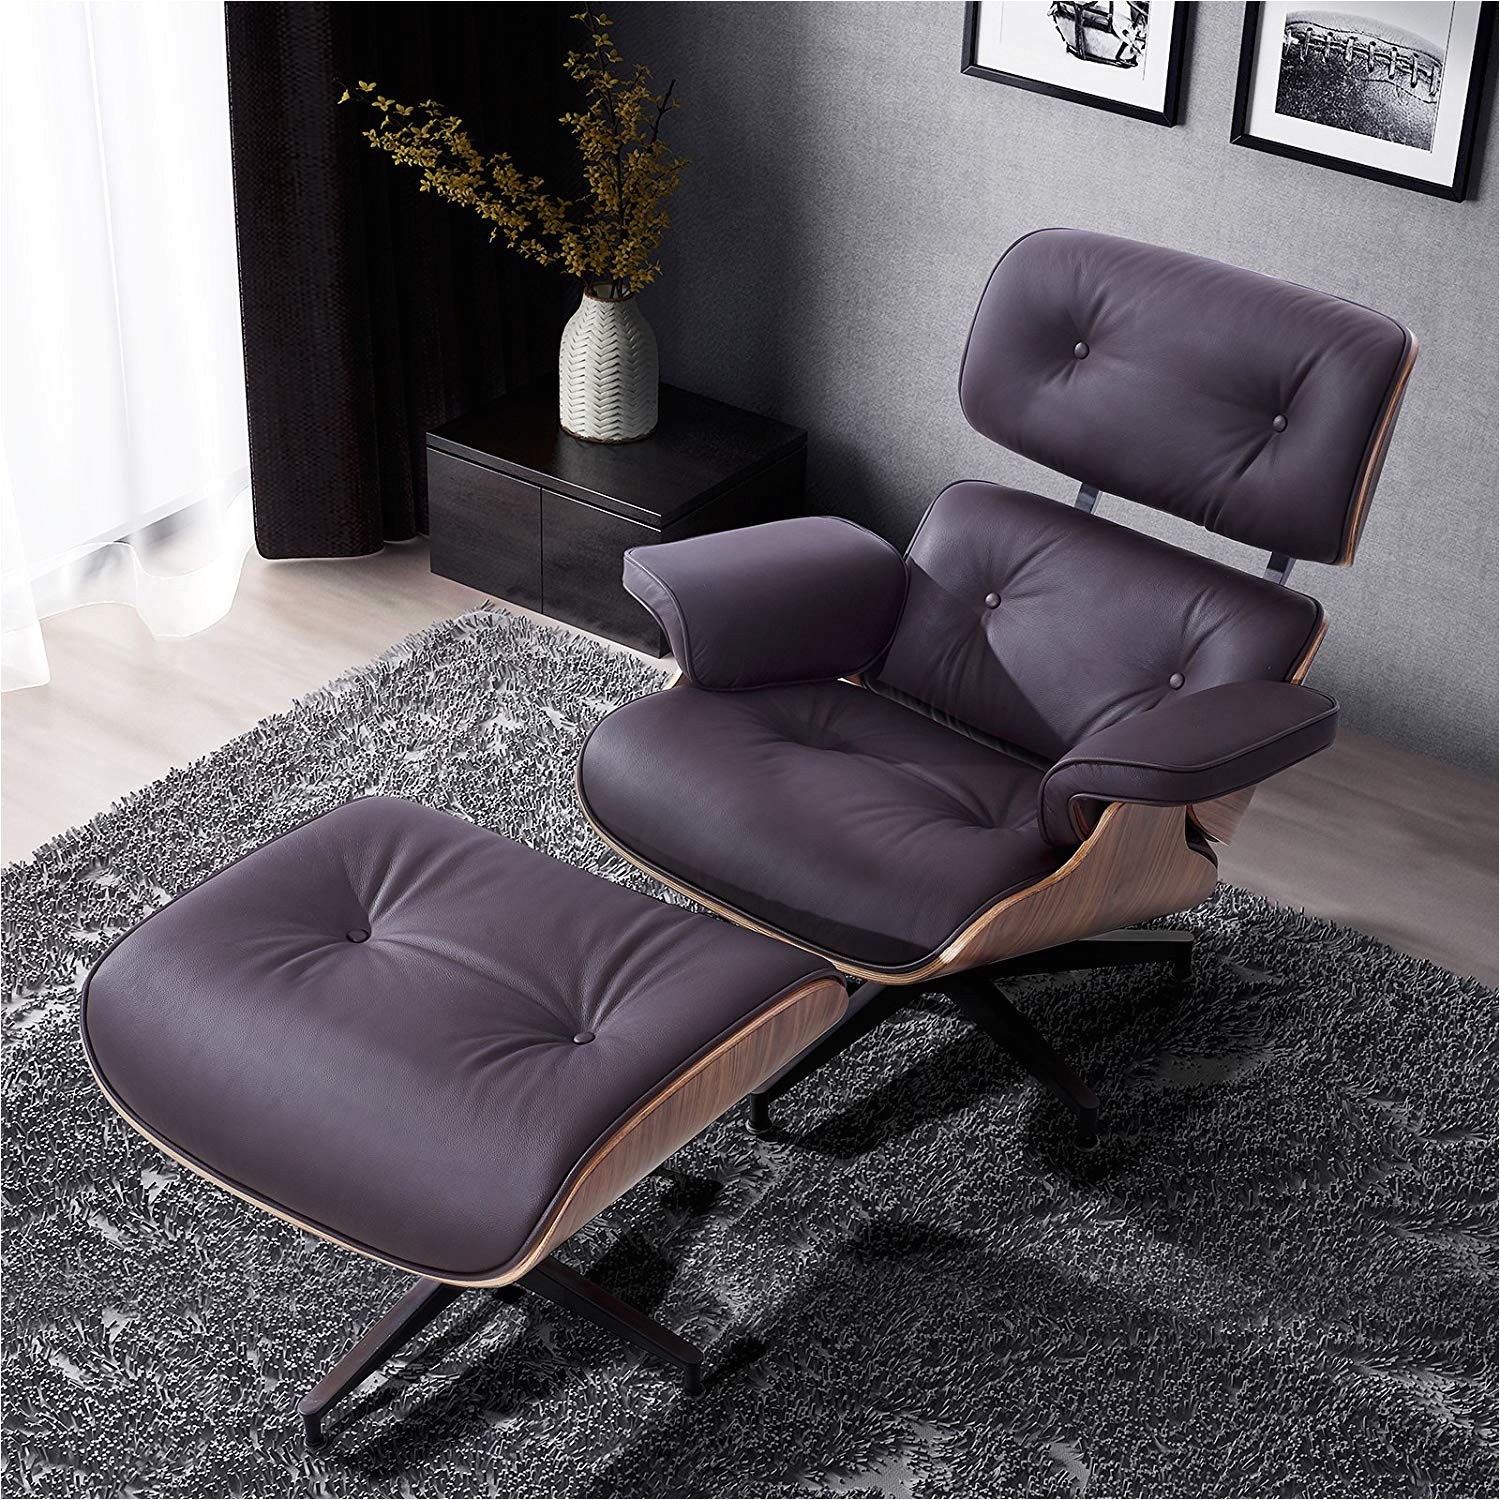 amazon com recliner genius 100 grain italian leather recliner lounge chair with ottoman brown kitchen dining